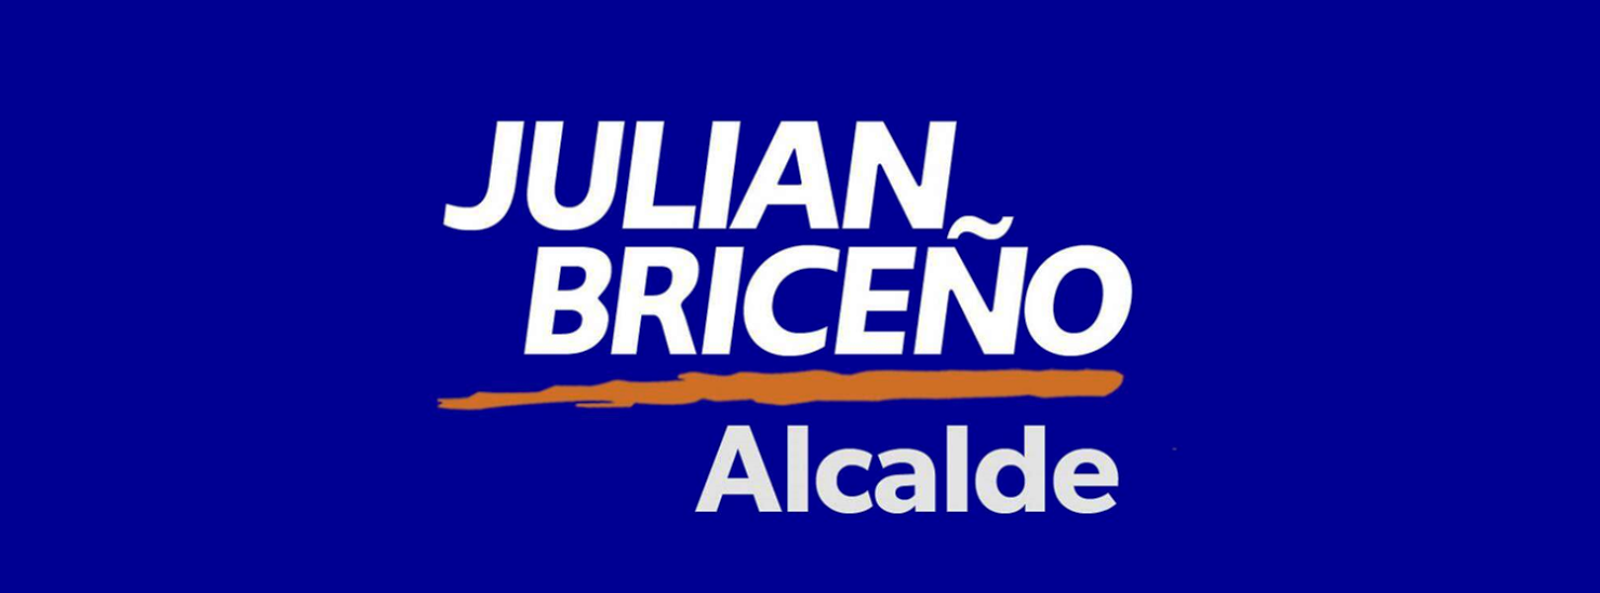 JULIAN BRICEÑO